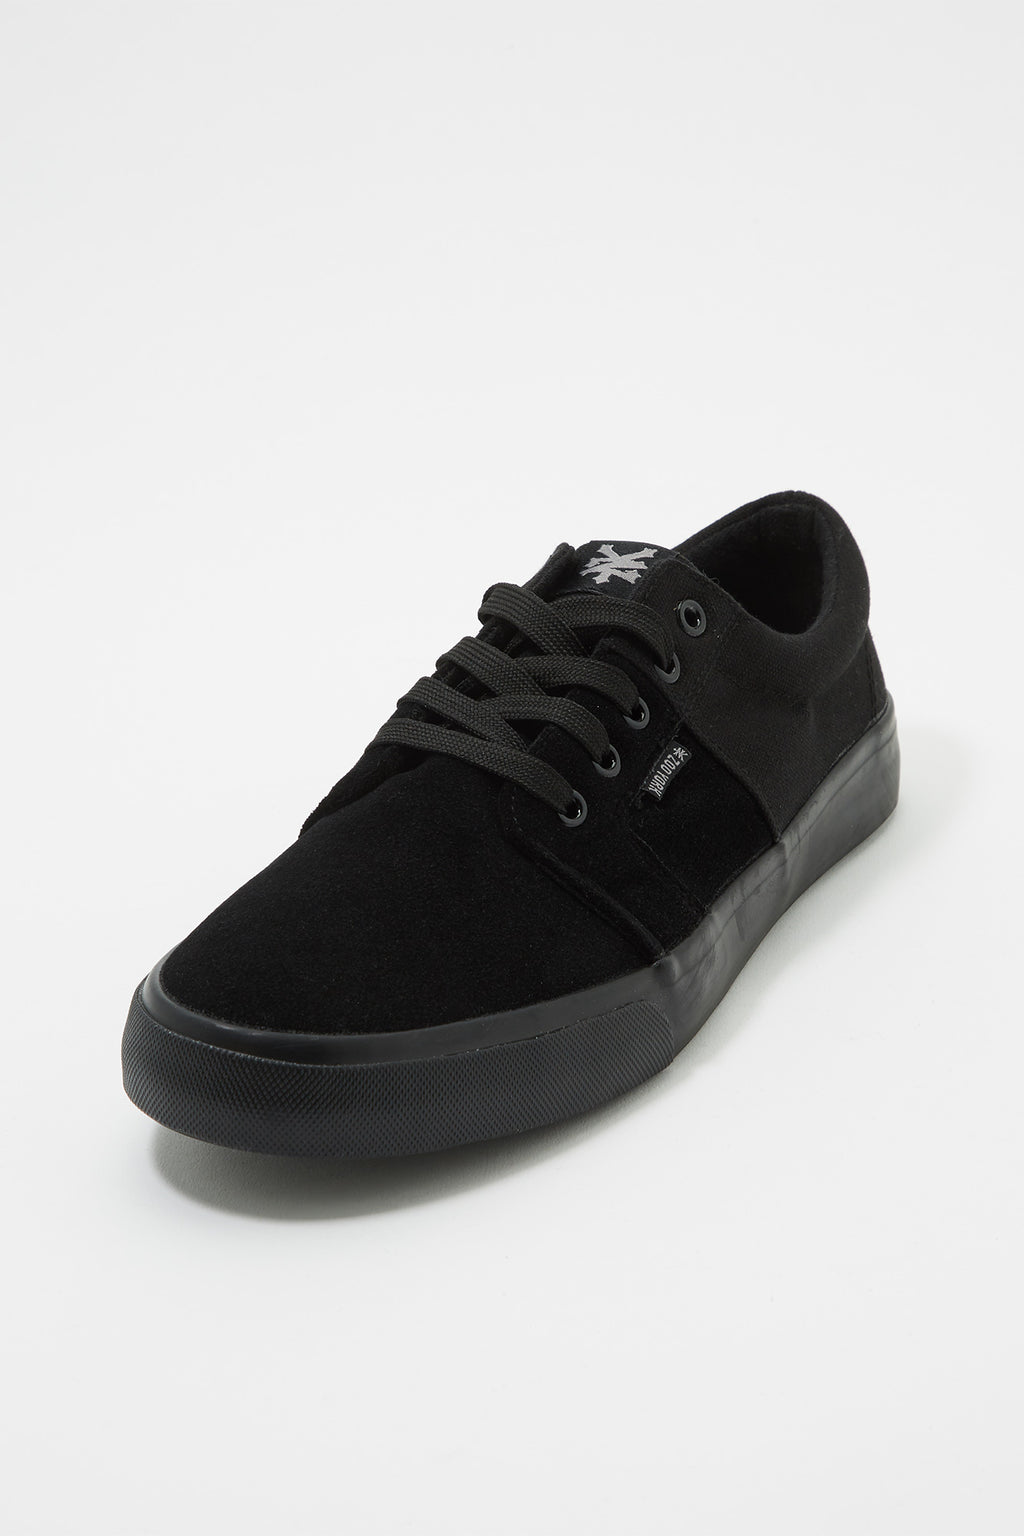 Zoo York Mens All Black Stack Lace-Up Canvas Shoes